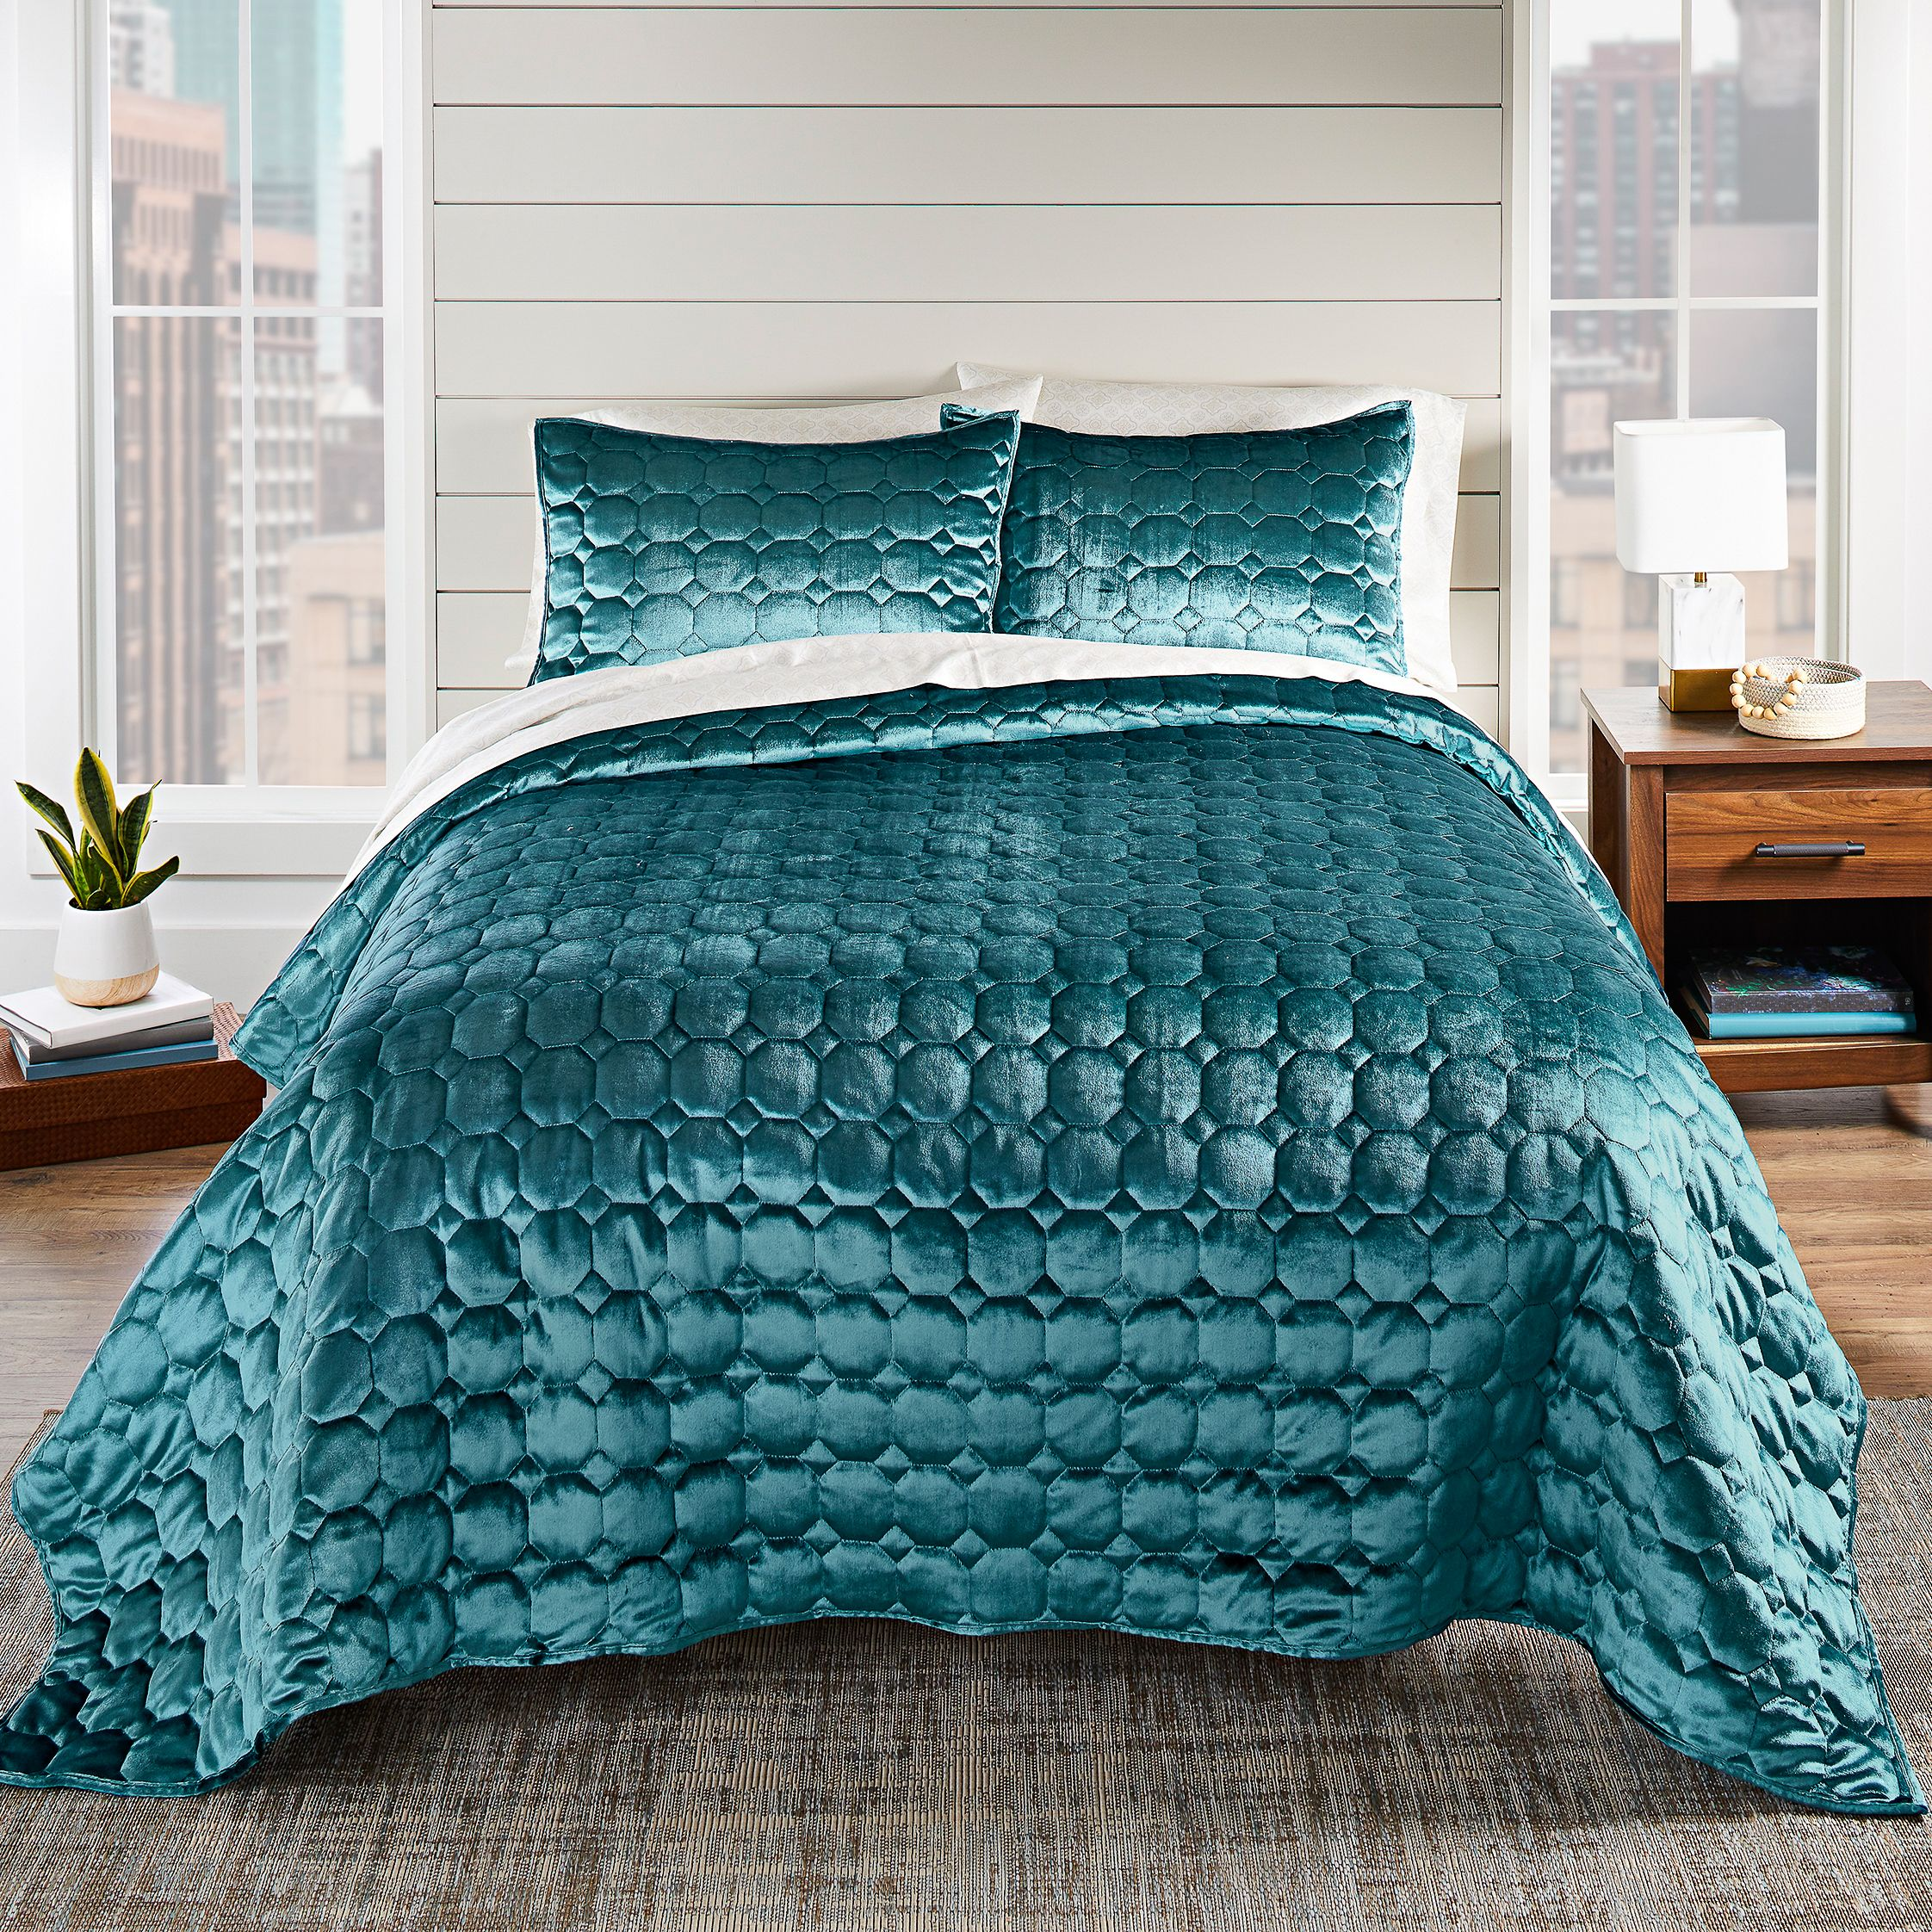 ebd5fa4e9bb0606d5ff7aa659b65159a - Better Homes And Gardens Pleated Diamond Quilt Collection